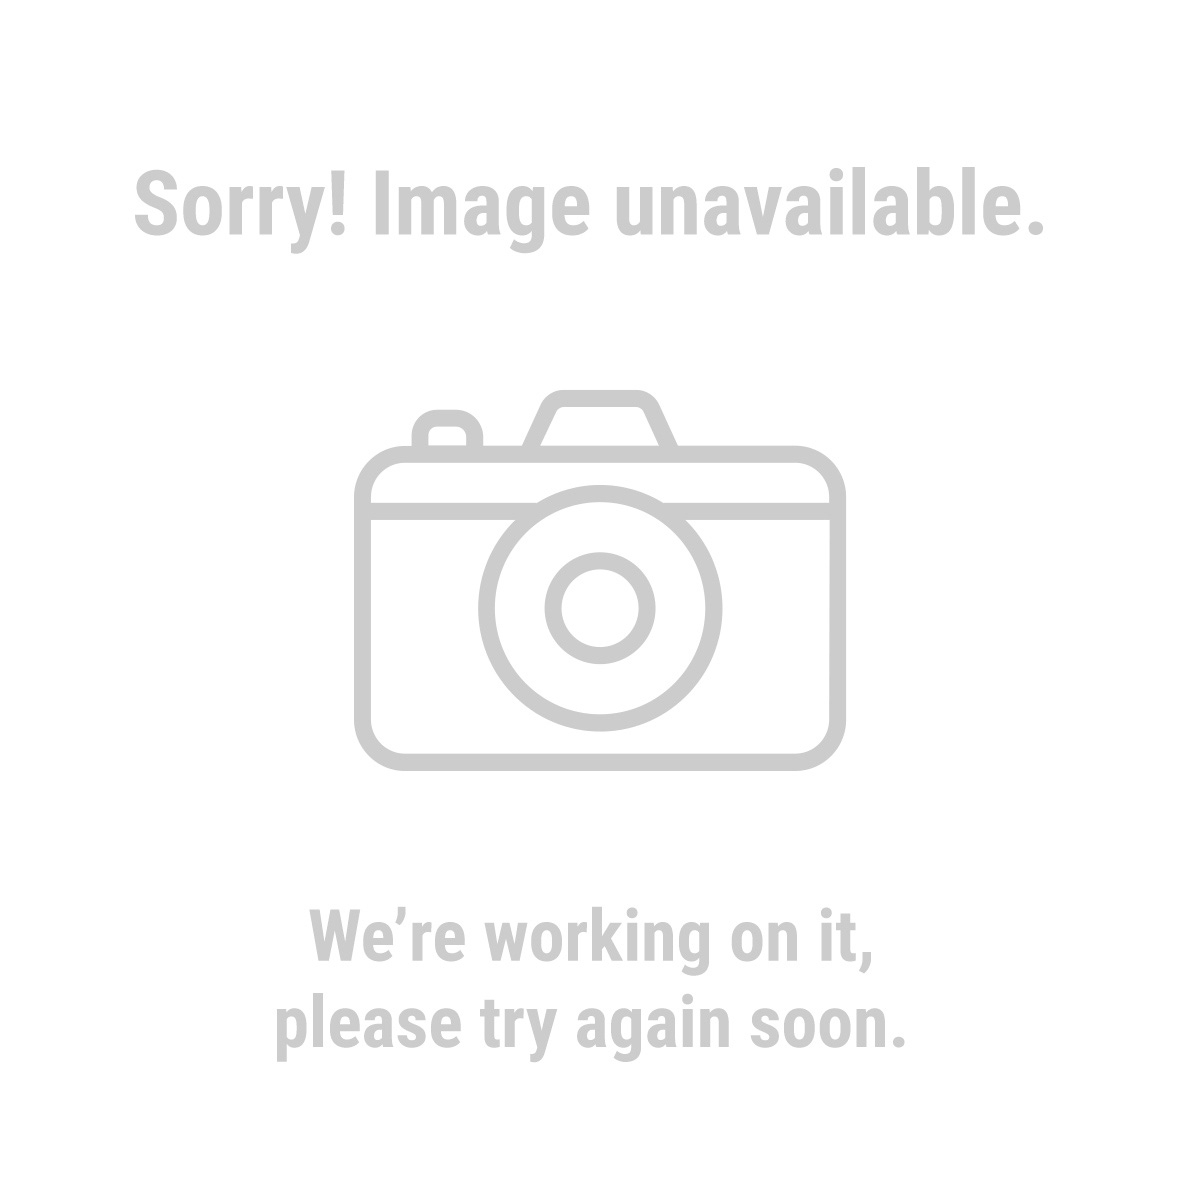 NiteIze LED 65639 LED Upgrade for C and D Cell Flashlights